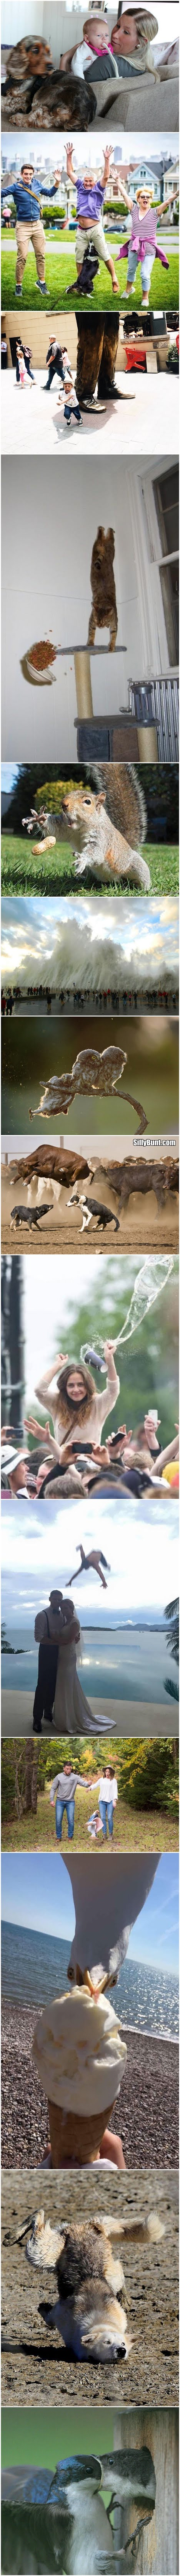 Funny Perfectly Timed Photo Collection Strip